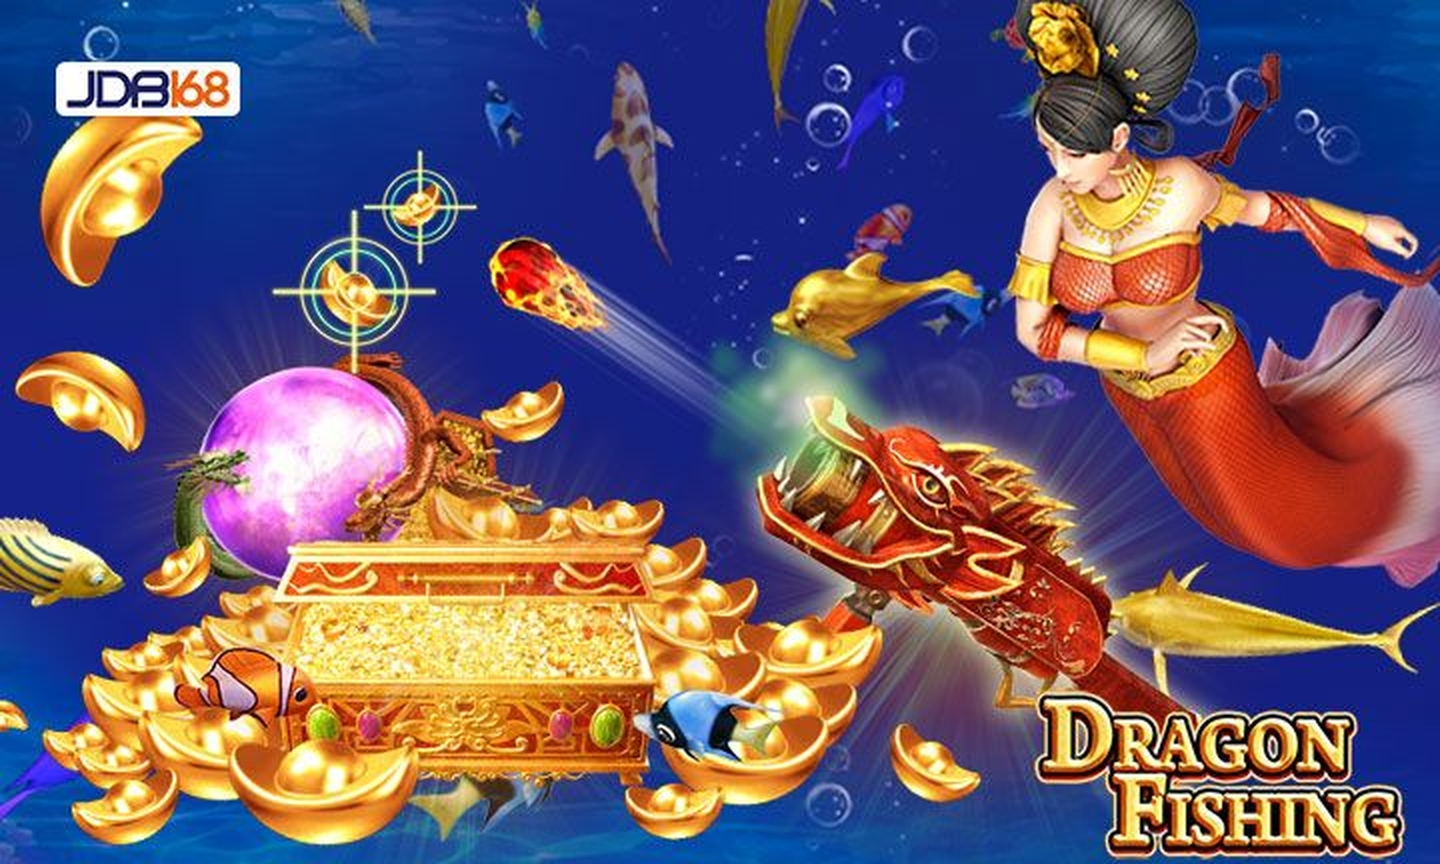 The 5 Dragons Fishing Online Slot Demo Game by JDB168